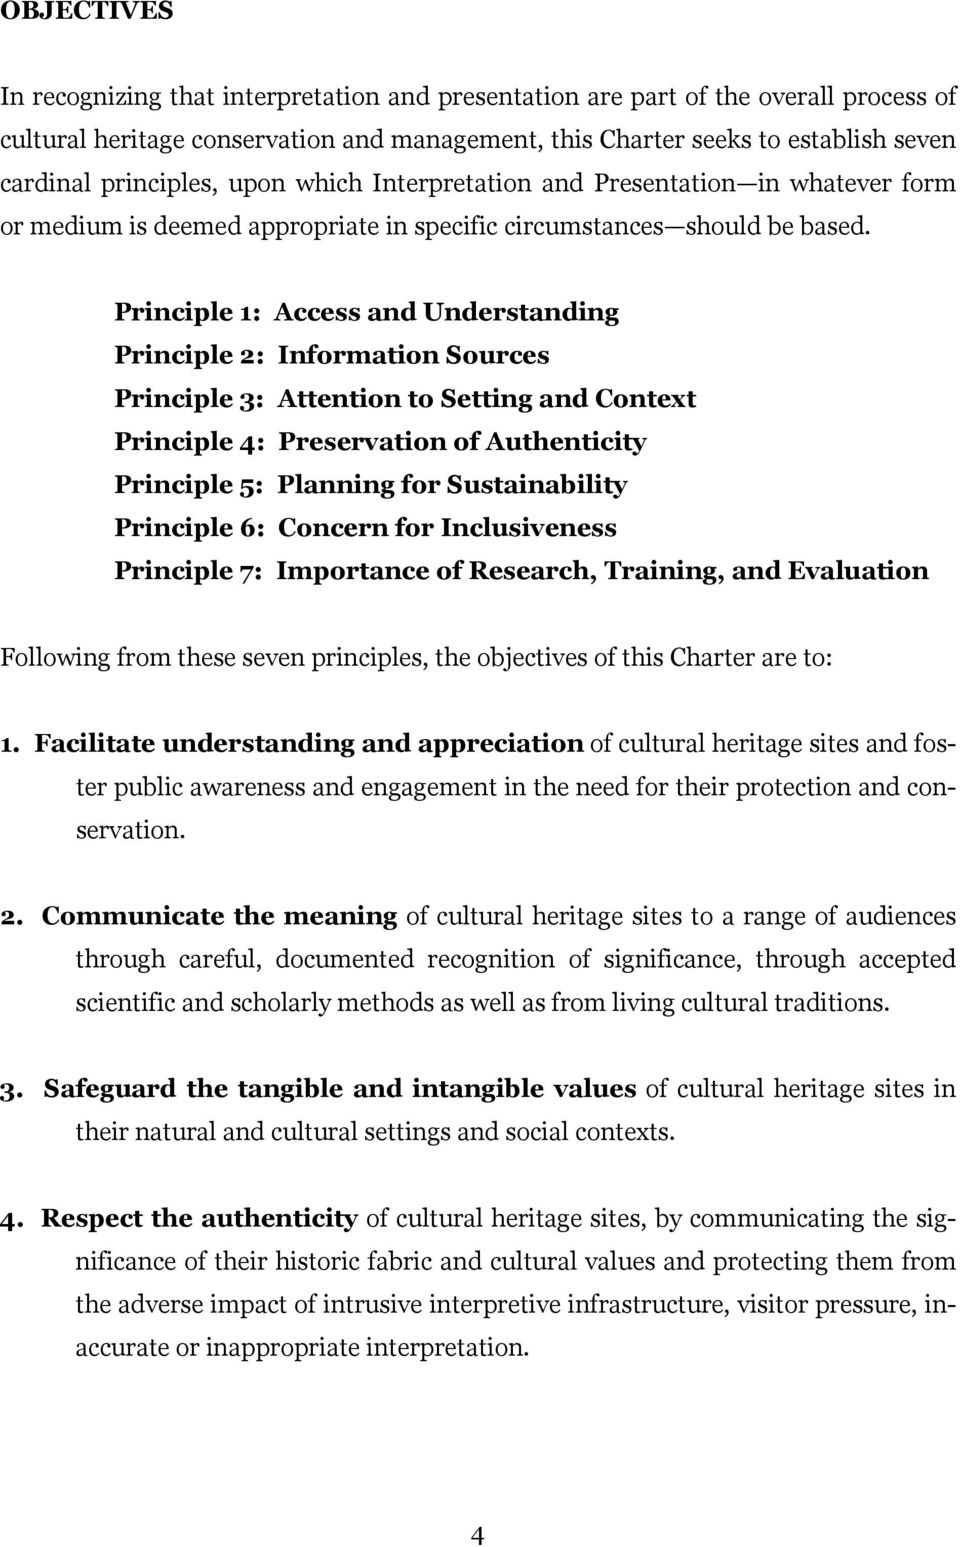 Principle 1: Access and Understanding Principle 2: Information Sources Principle 3: Attention to Setting and Context Principle 4: Preservation of Authenticity Principle 5: Planning for Sustainability